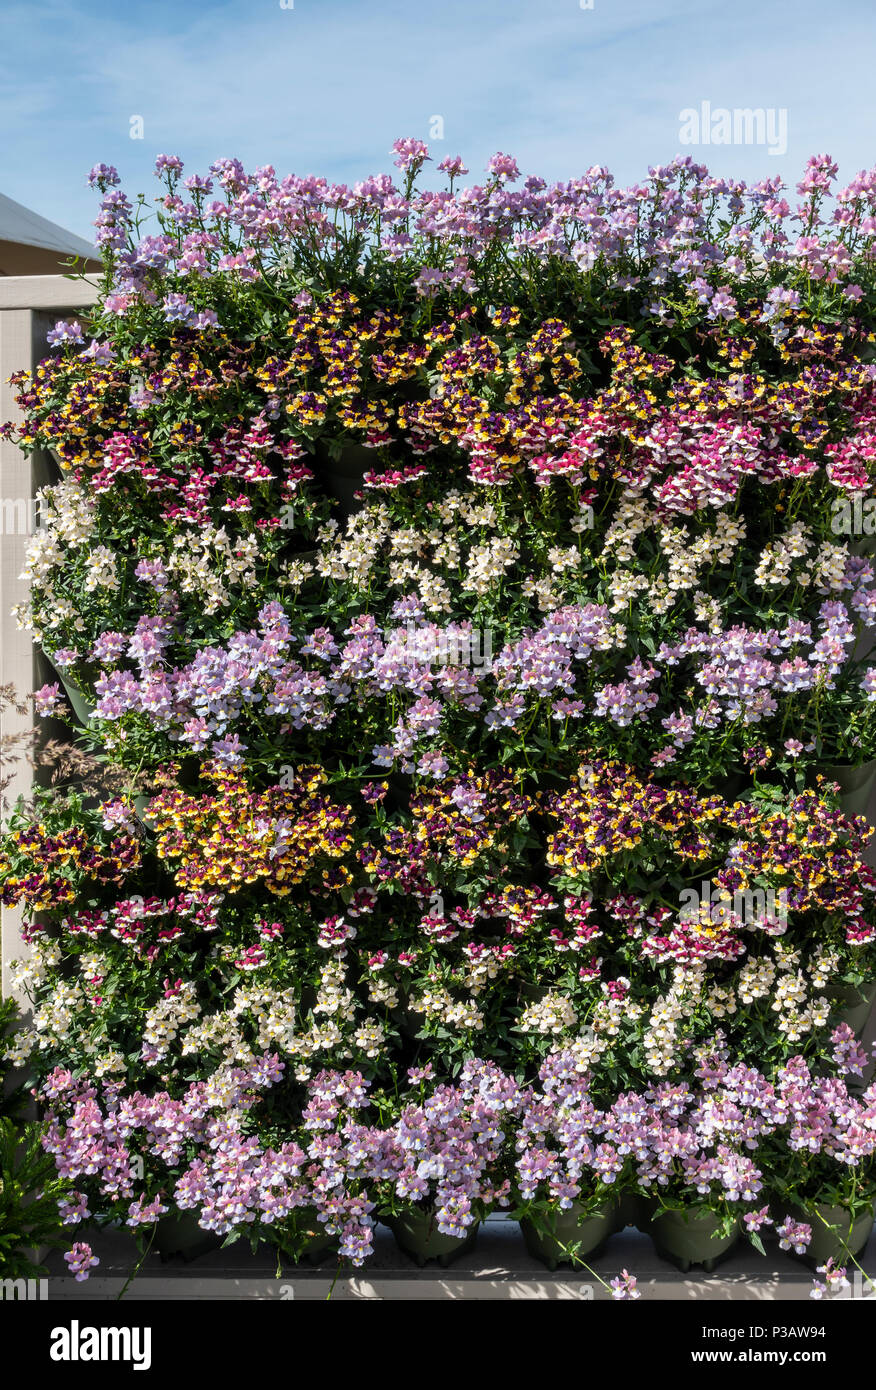 A living wall consisting of rows of  colourful bedding plants; Gardeners' World Live Show, NEC, Birmingham, England, UK - Stock Image